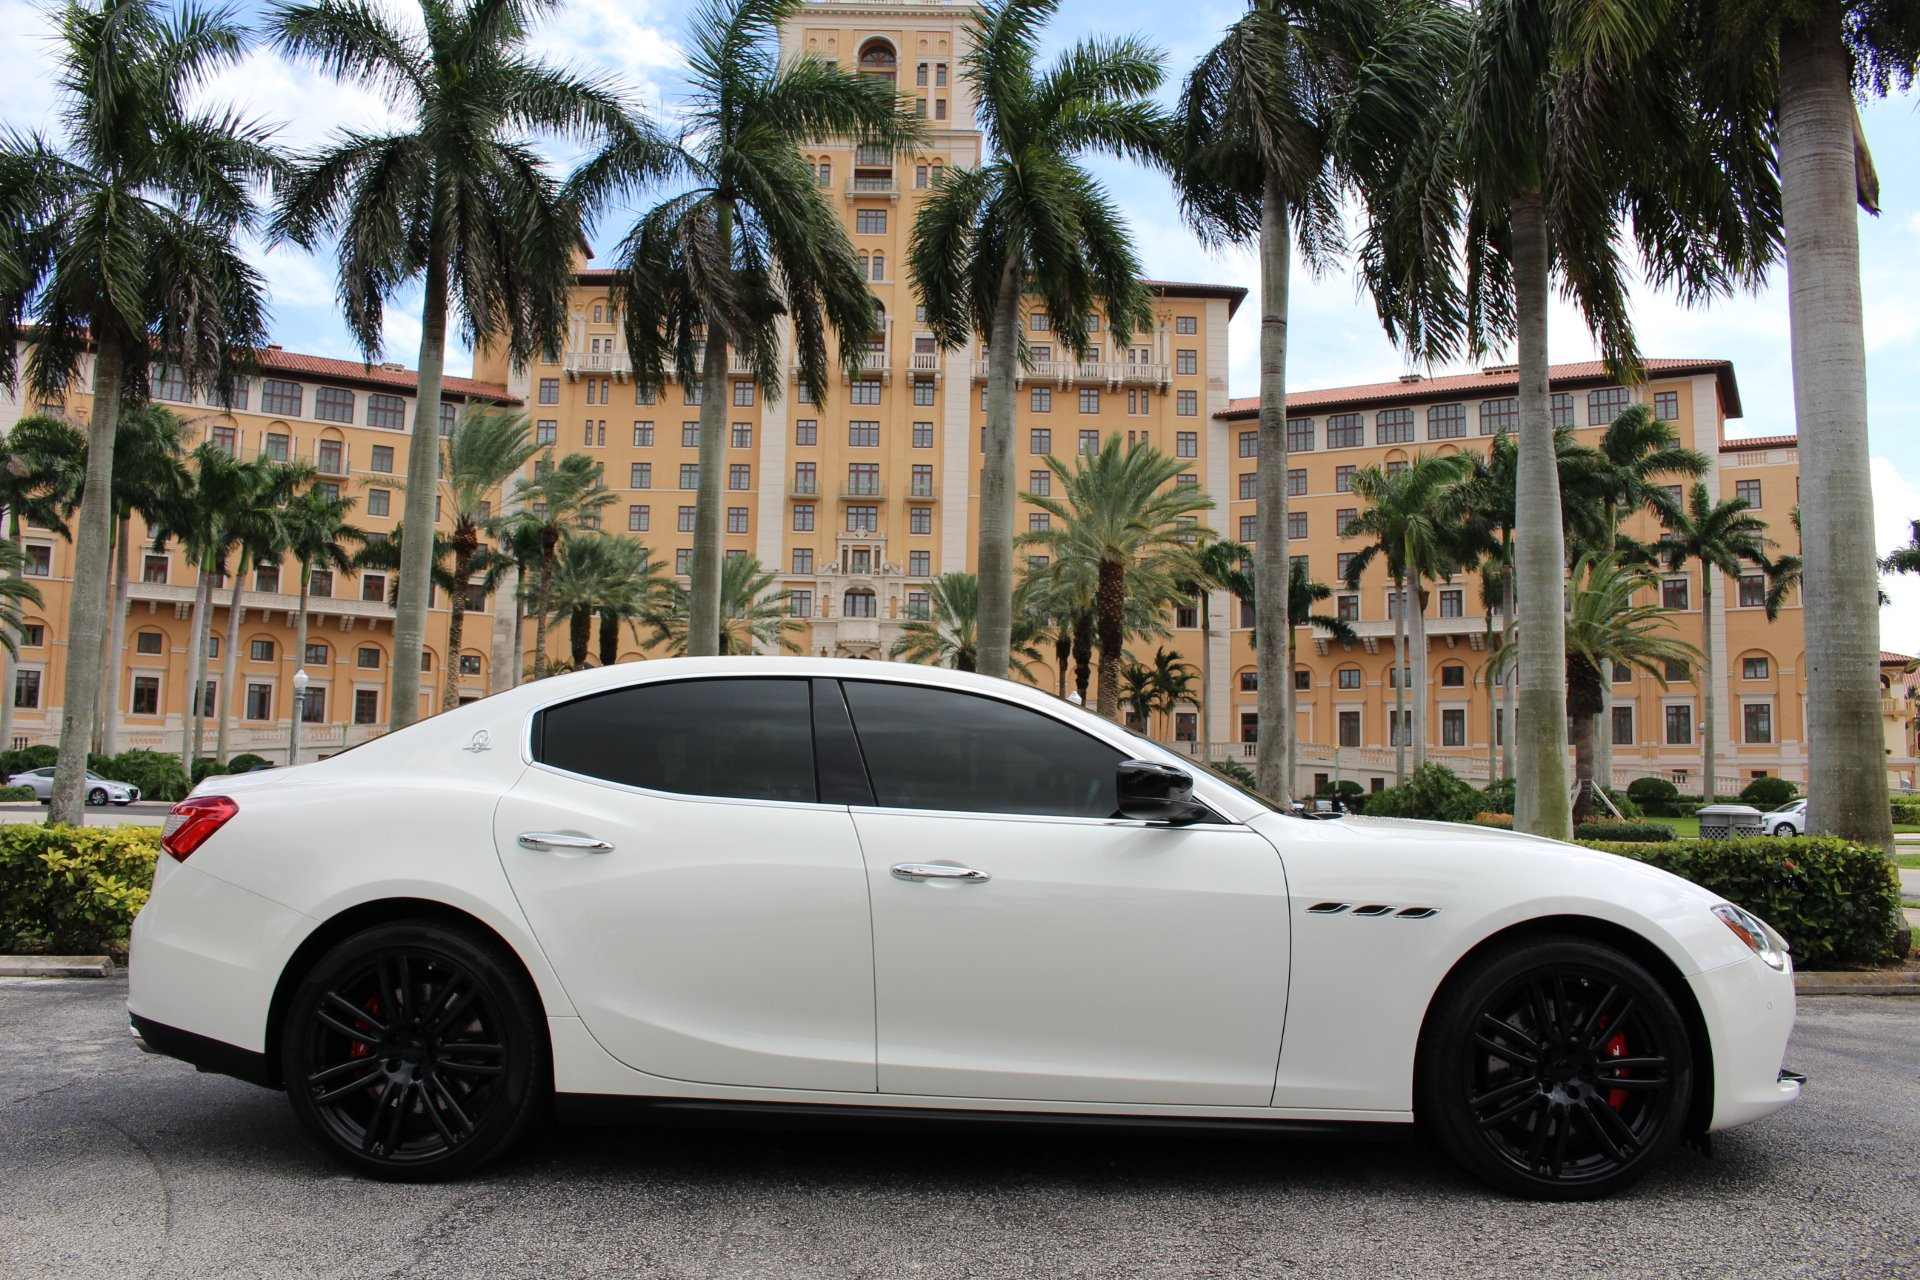 Used 2016 Maserati Ghibli S for sale Sold at The Gables Sports Cars in Miami FL 33146 1